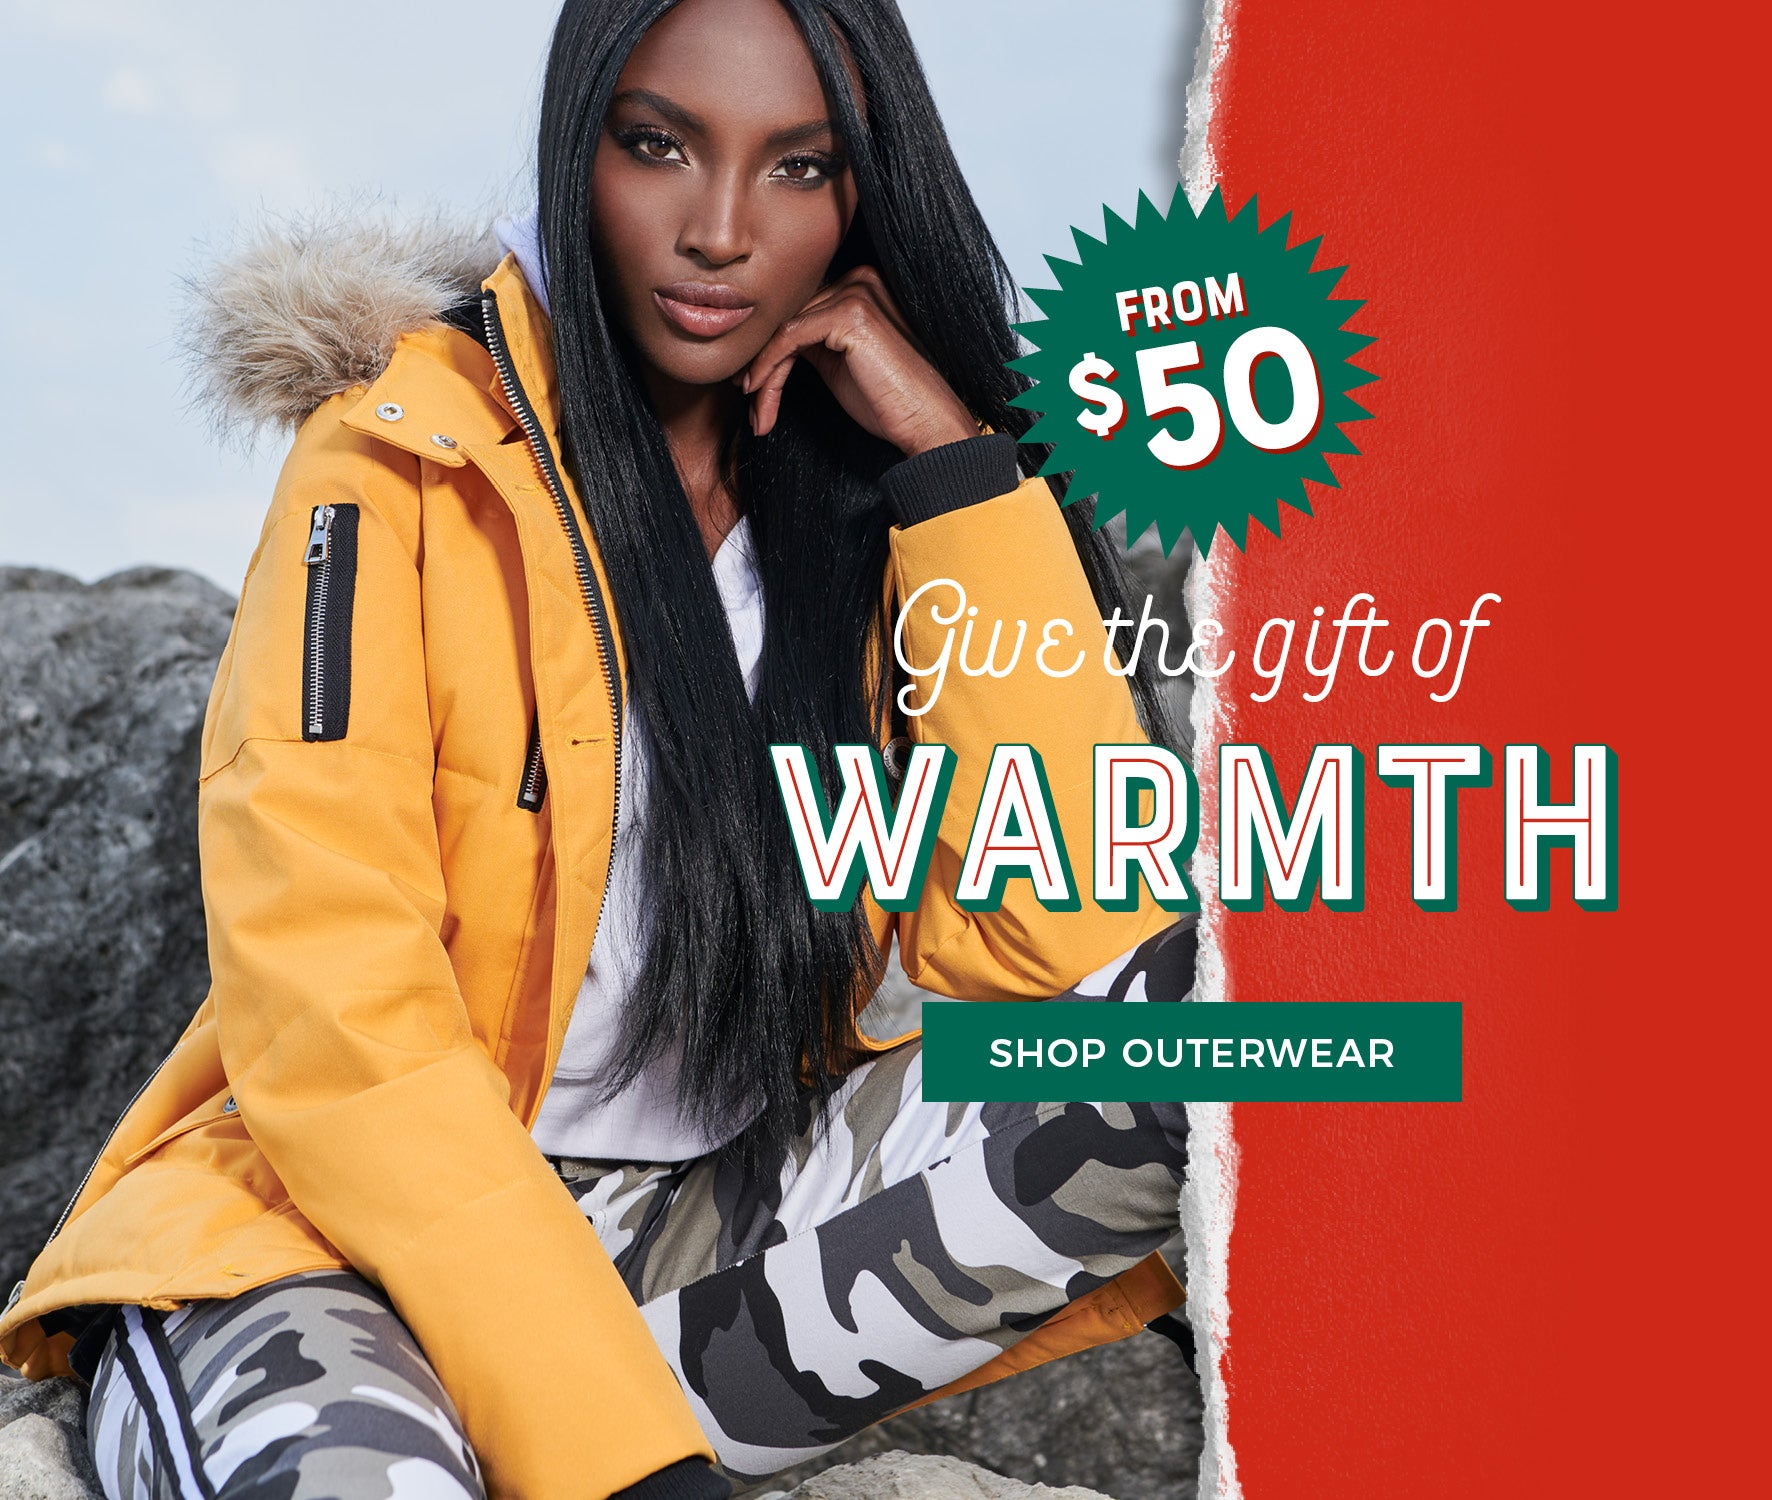 Urban Planet | Give The Gift of Warmth - Shop Outerwear from $50